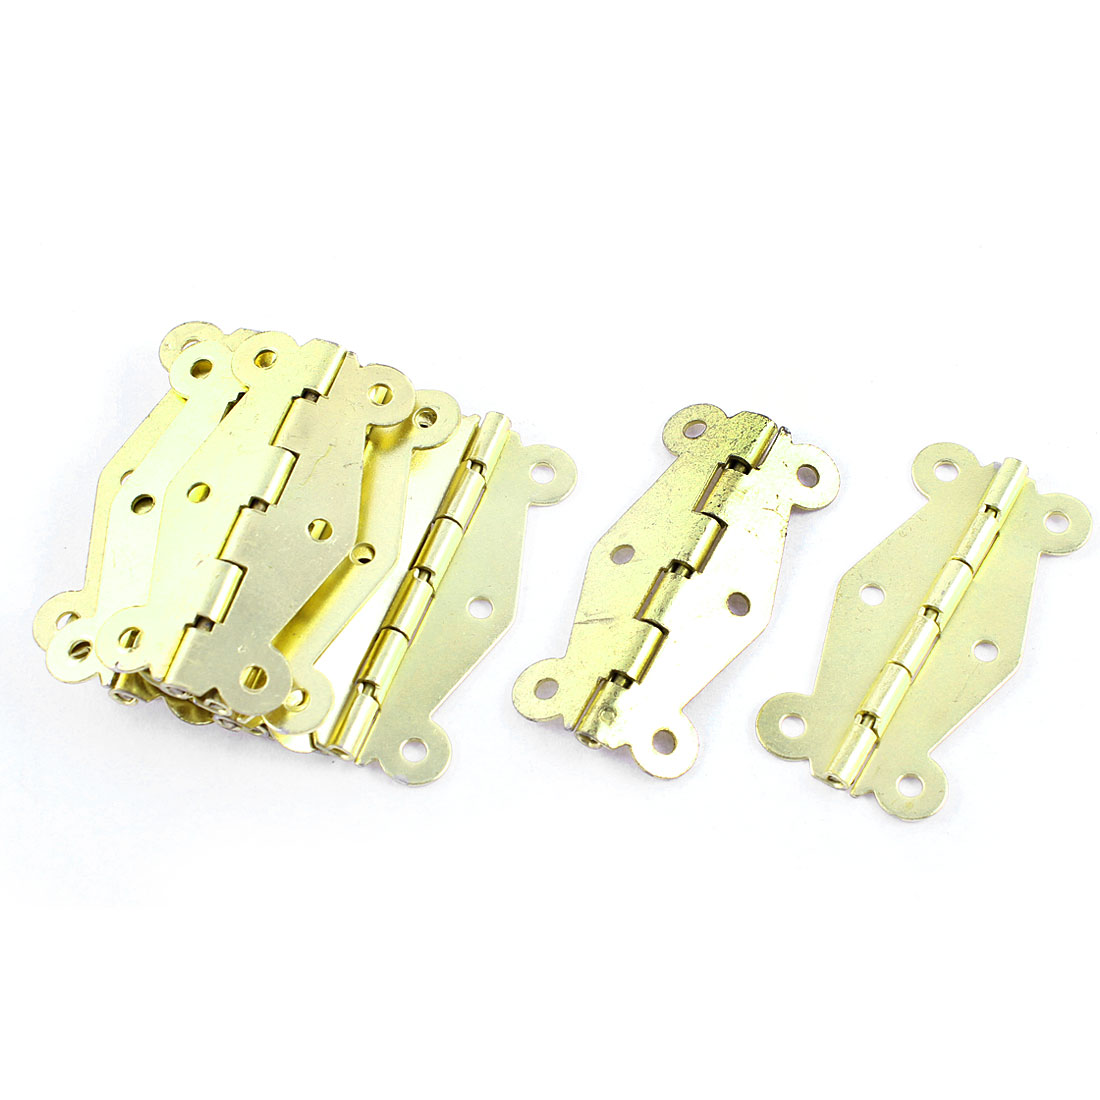 Window Cupboard Gold Tone Rotatable Door Hinges Hardware 10 Pcs